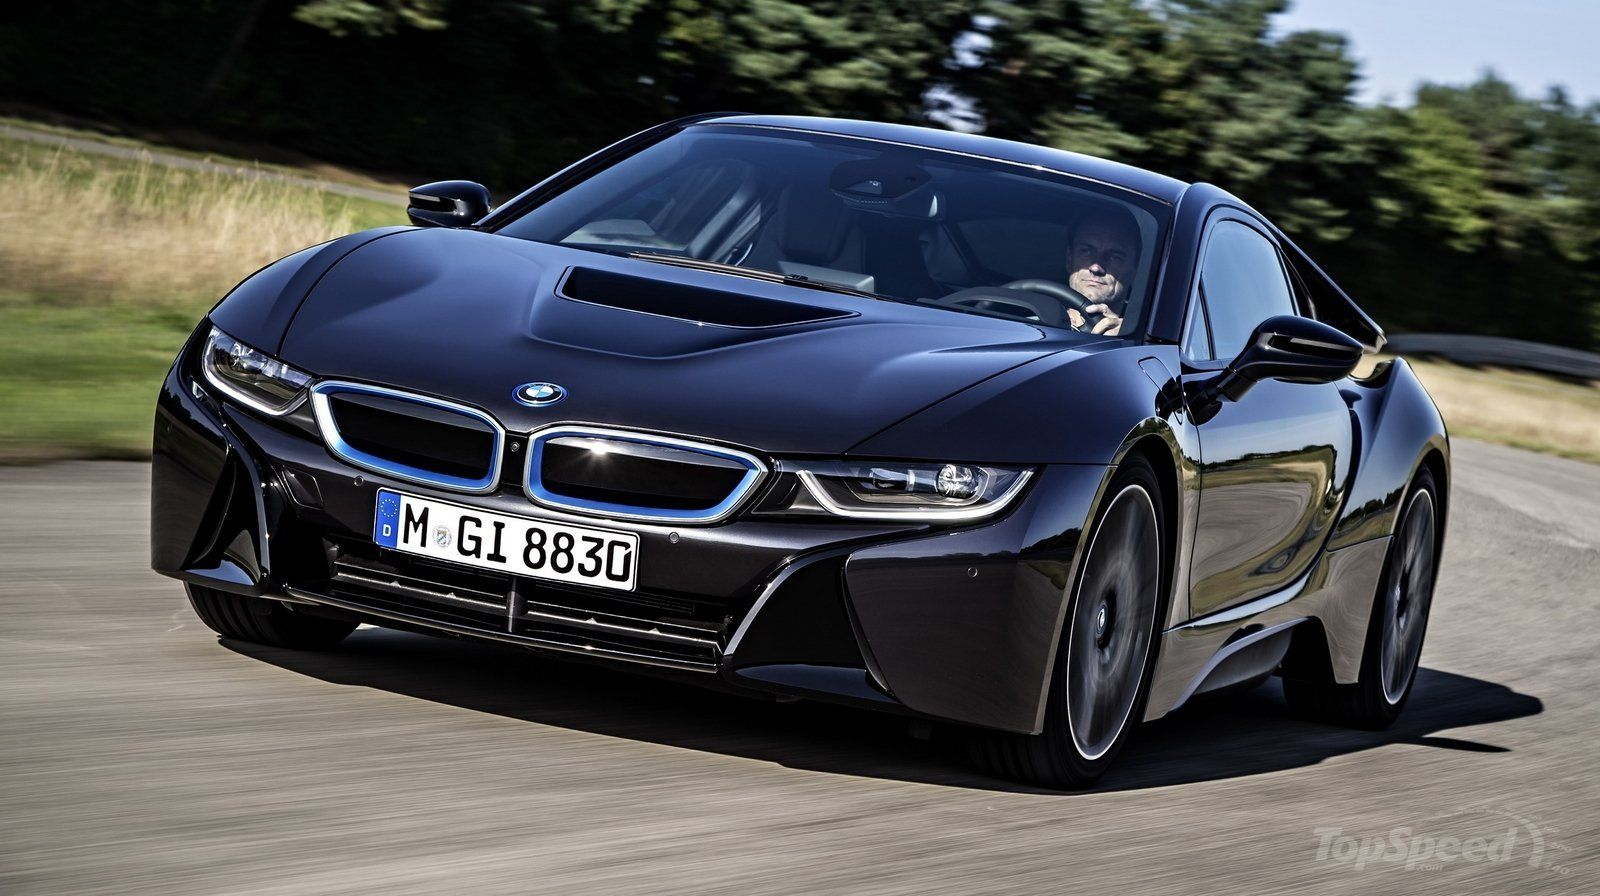 Getting To Know The BMW Hybrid Supercar (w/ Video)